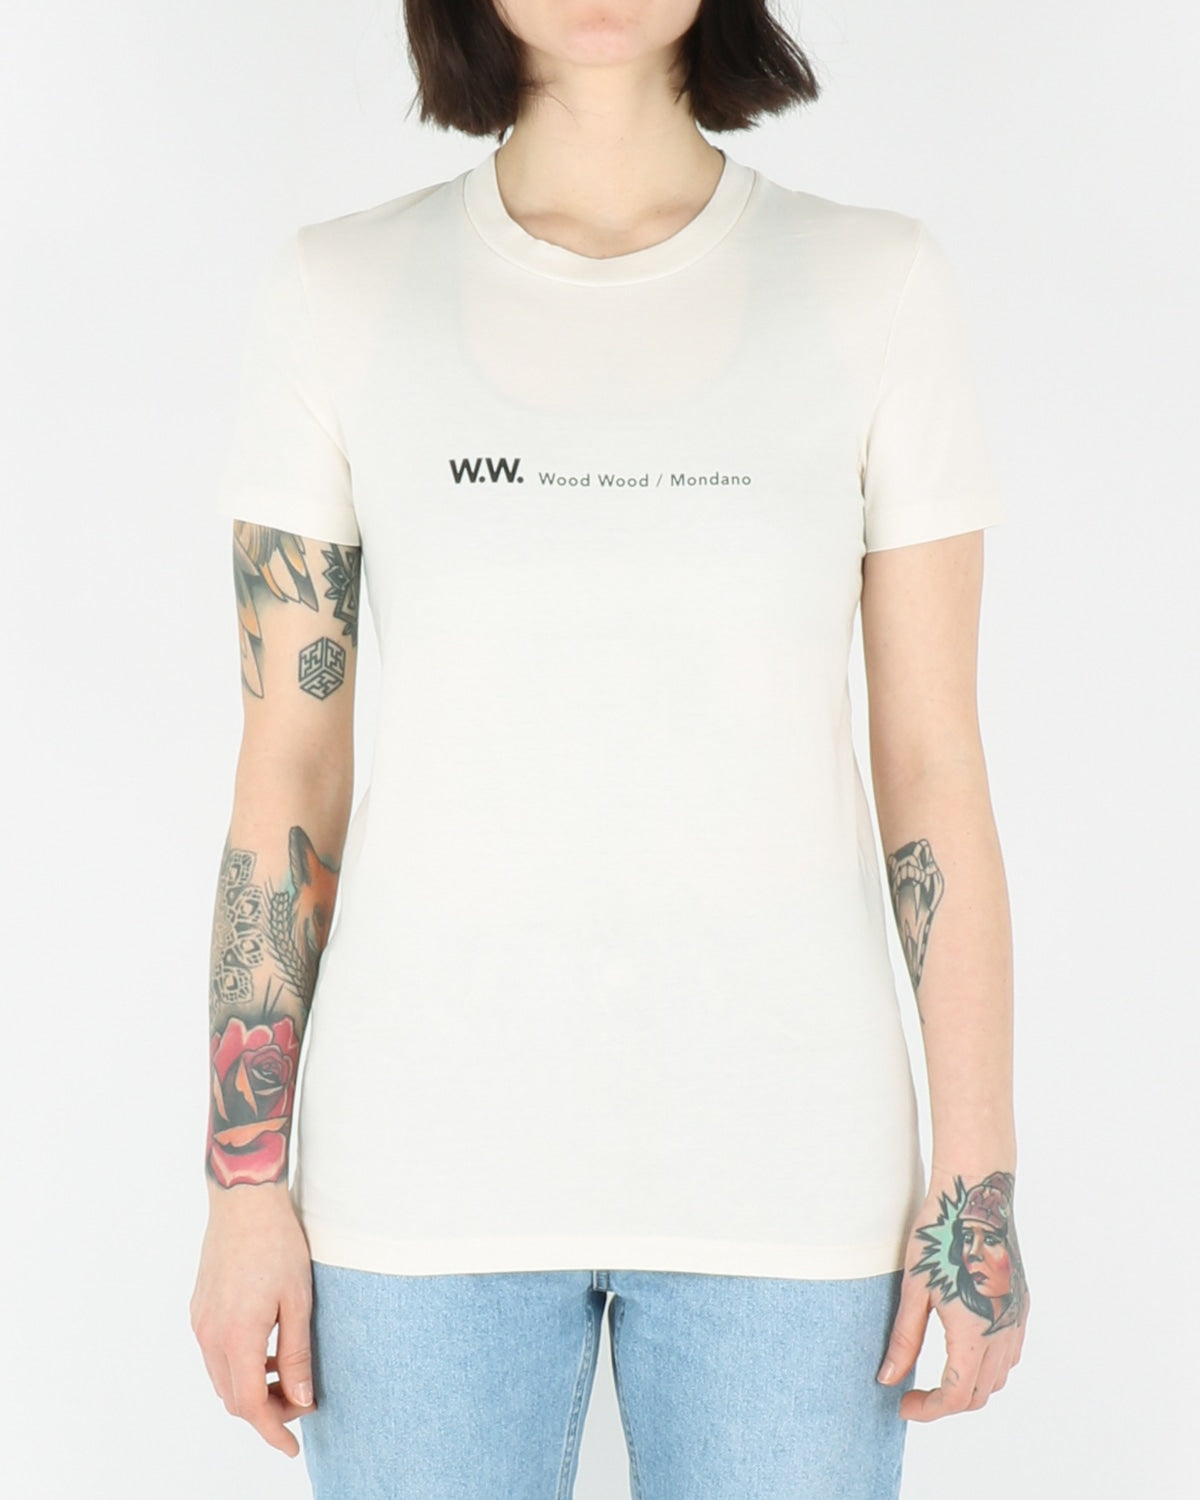 wood wood_eden t-shirt_offwhite_view_1_3